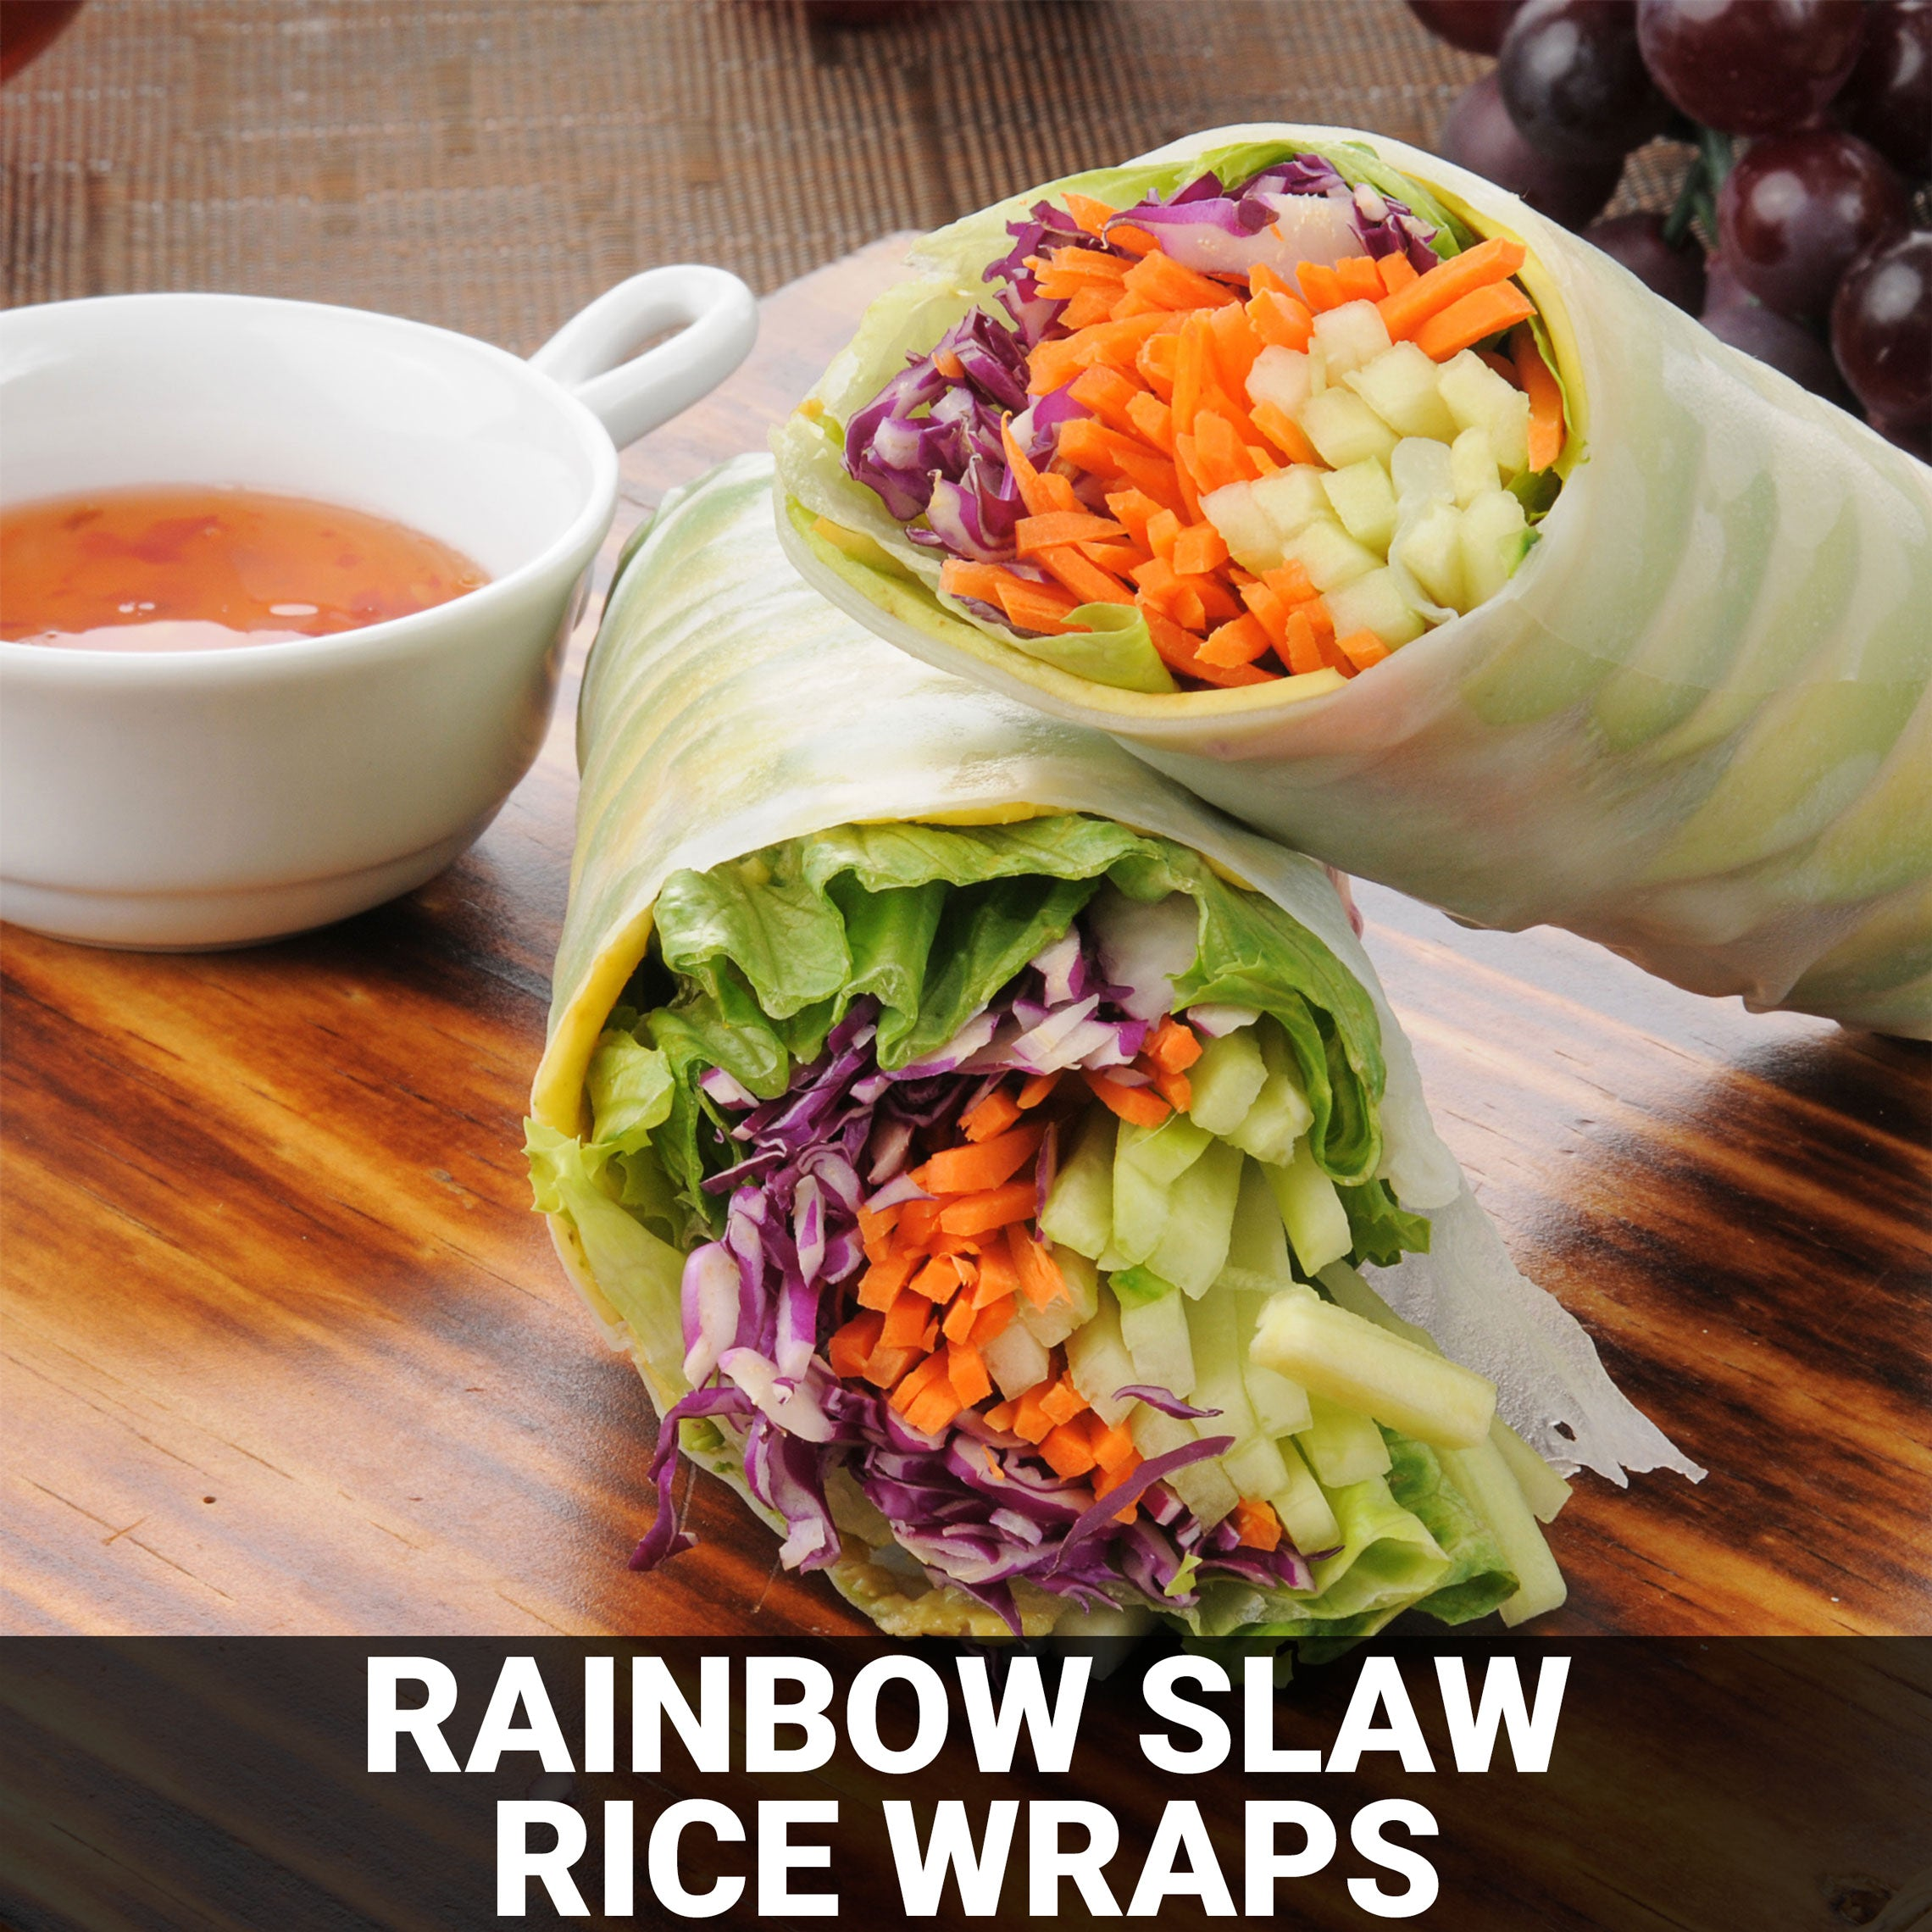 Rainbow Slaw Rice Wraps Recipe - Foods Alive